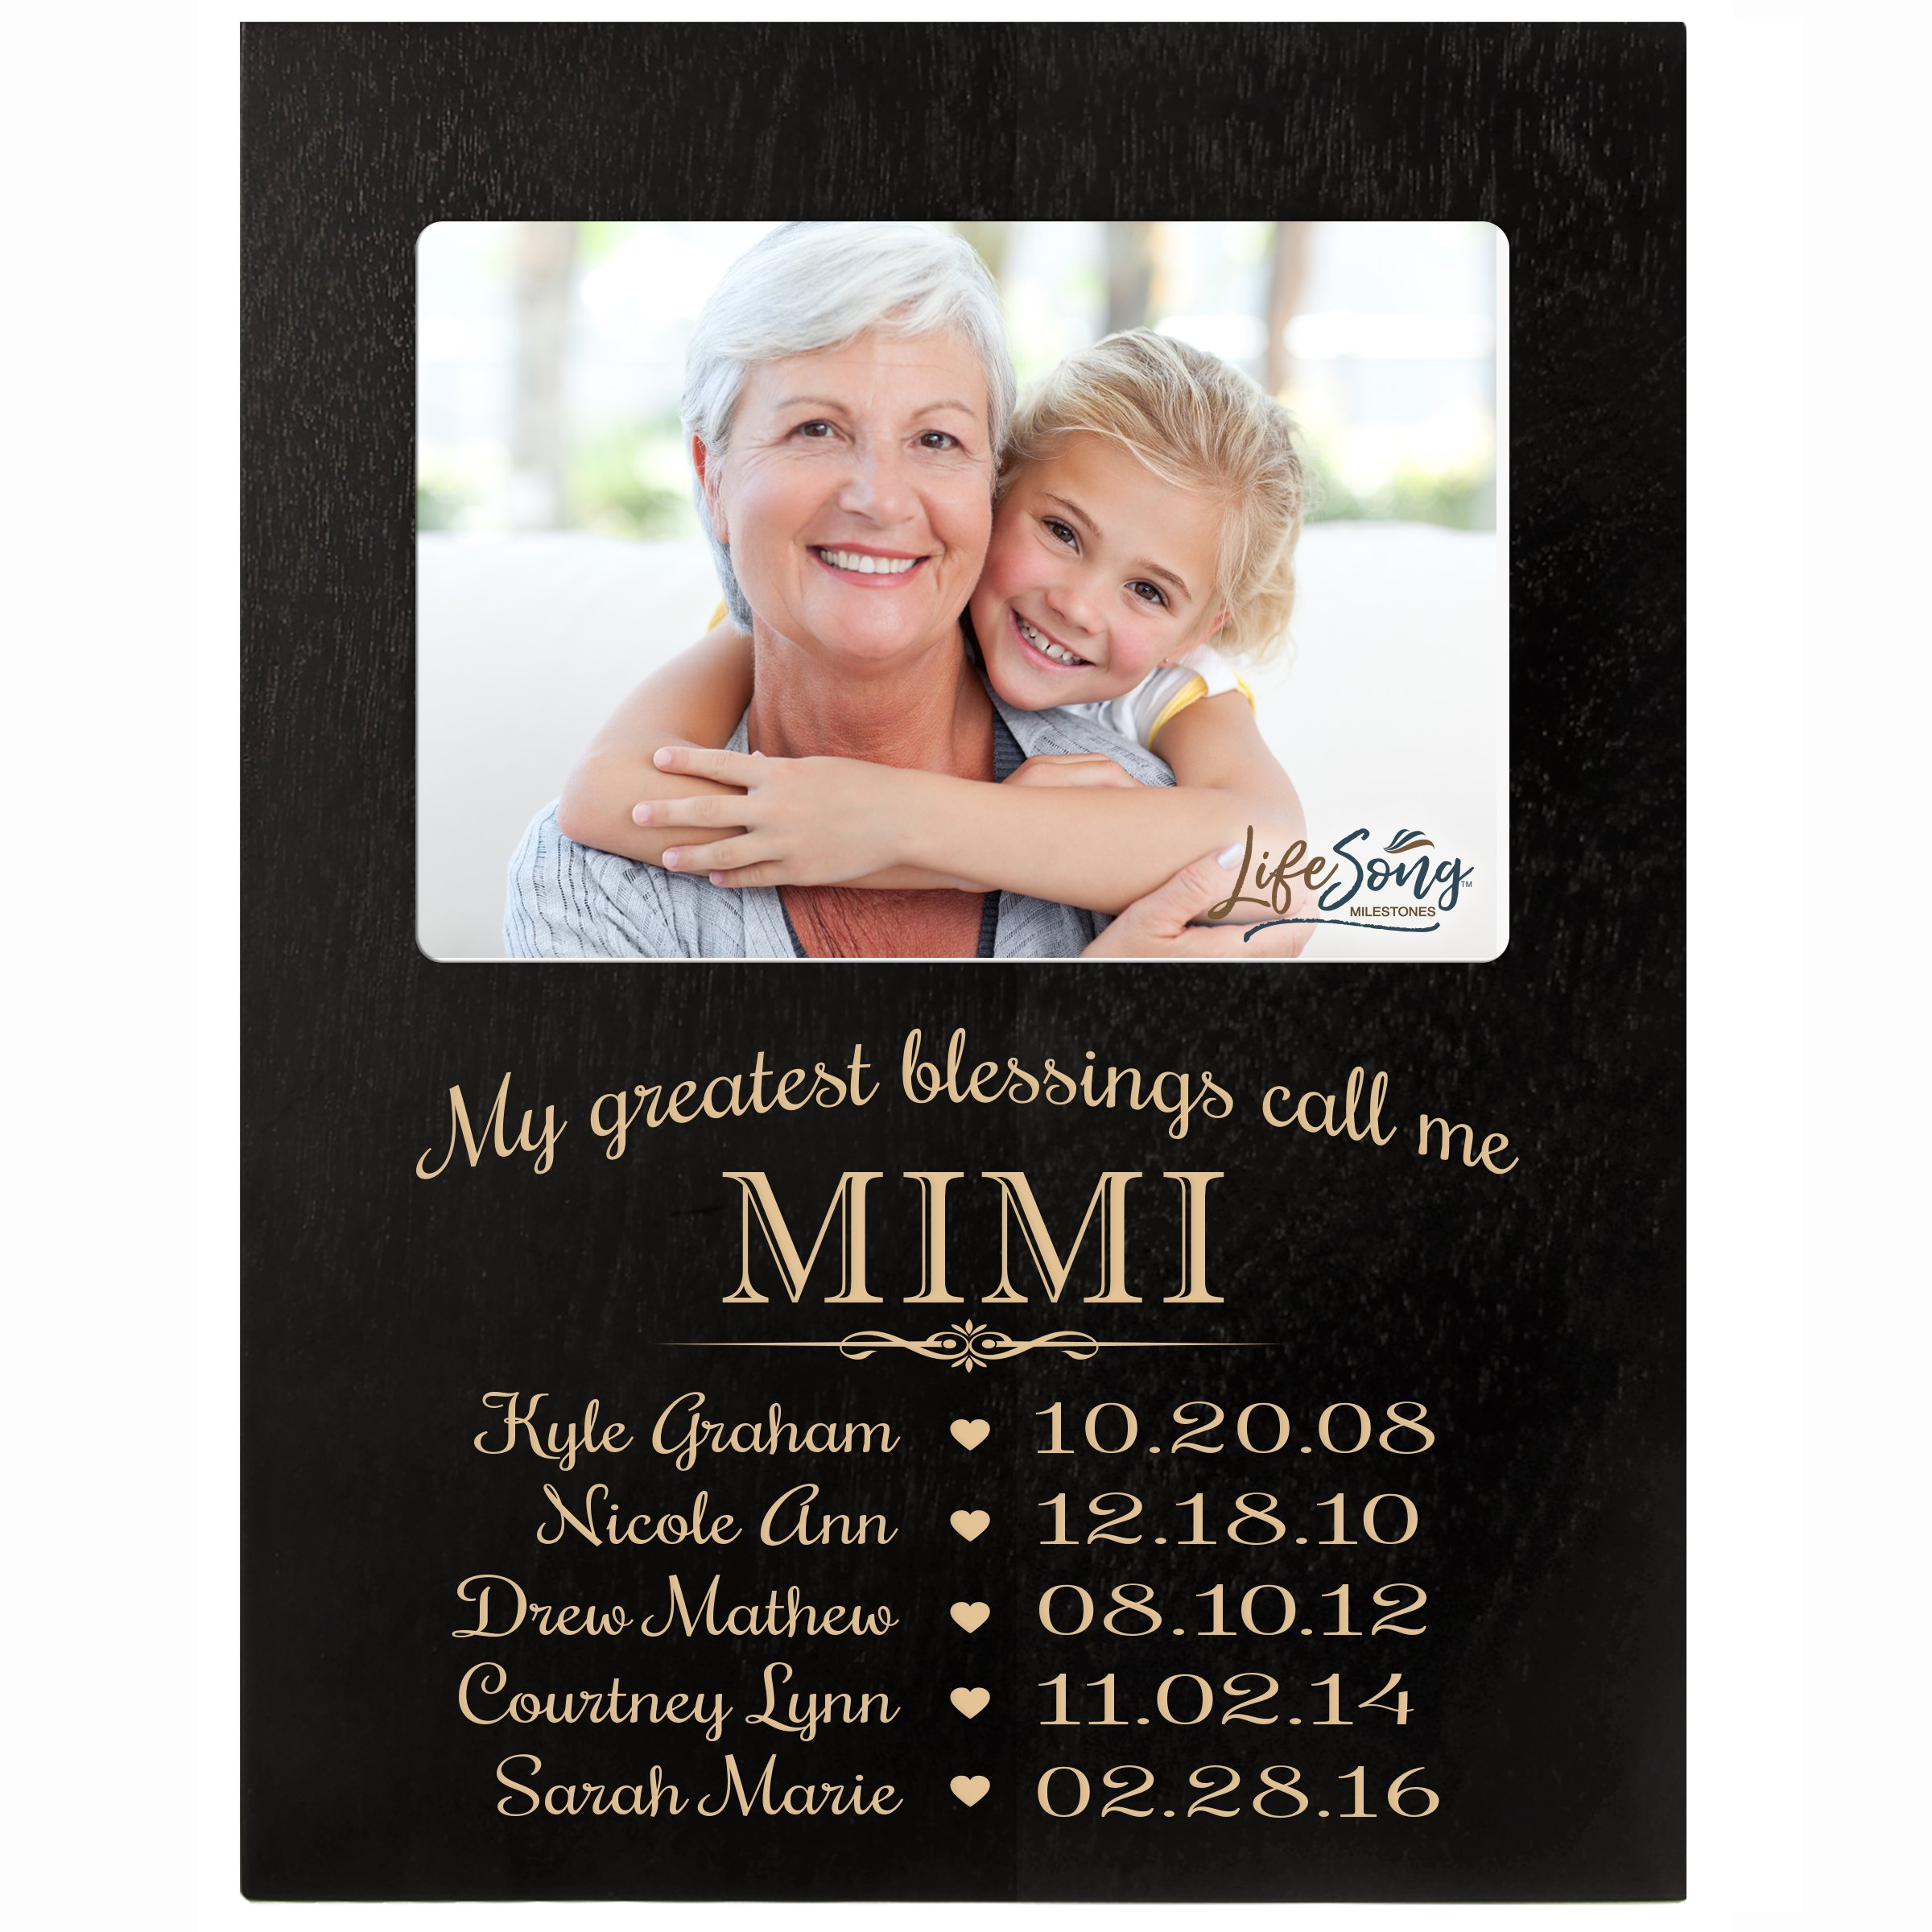 LifeSong Milestones Personalized Gift for Mimi Picture Frame with Children's Names and Kid's Birth Date Special Dates My Greatest Blessings Call me Mimi Holds 4x6 Photo (Black)